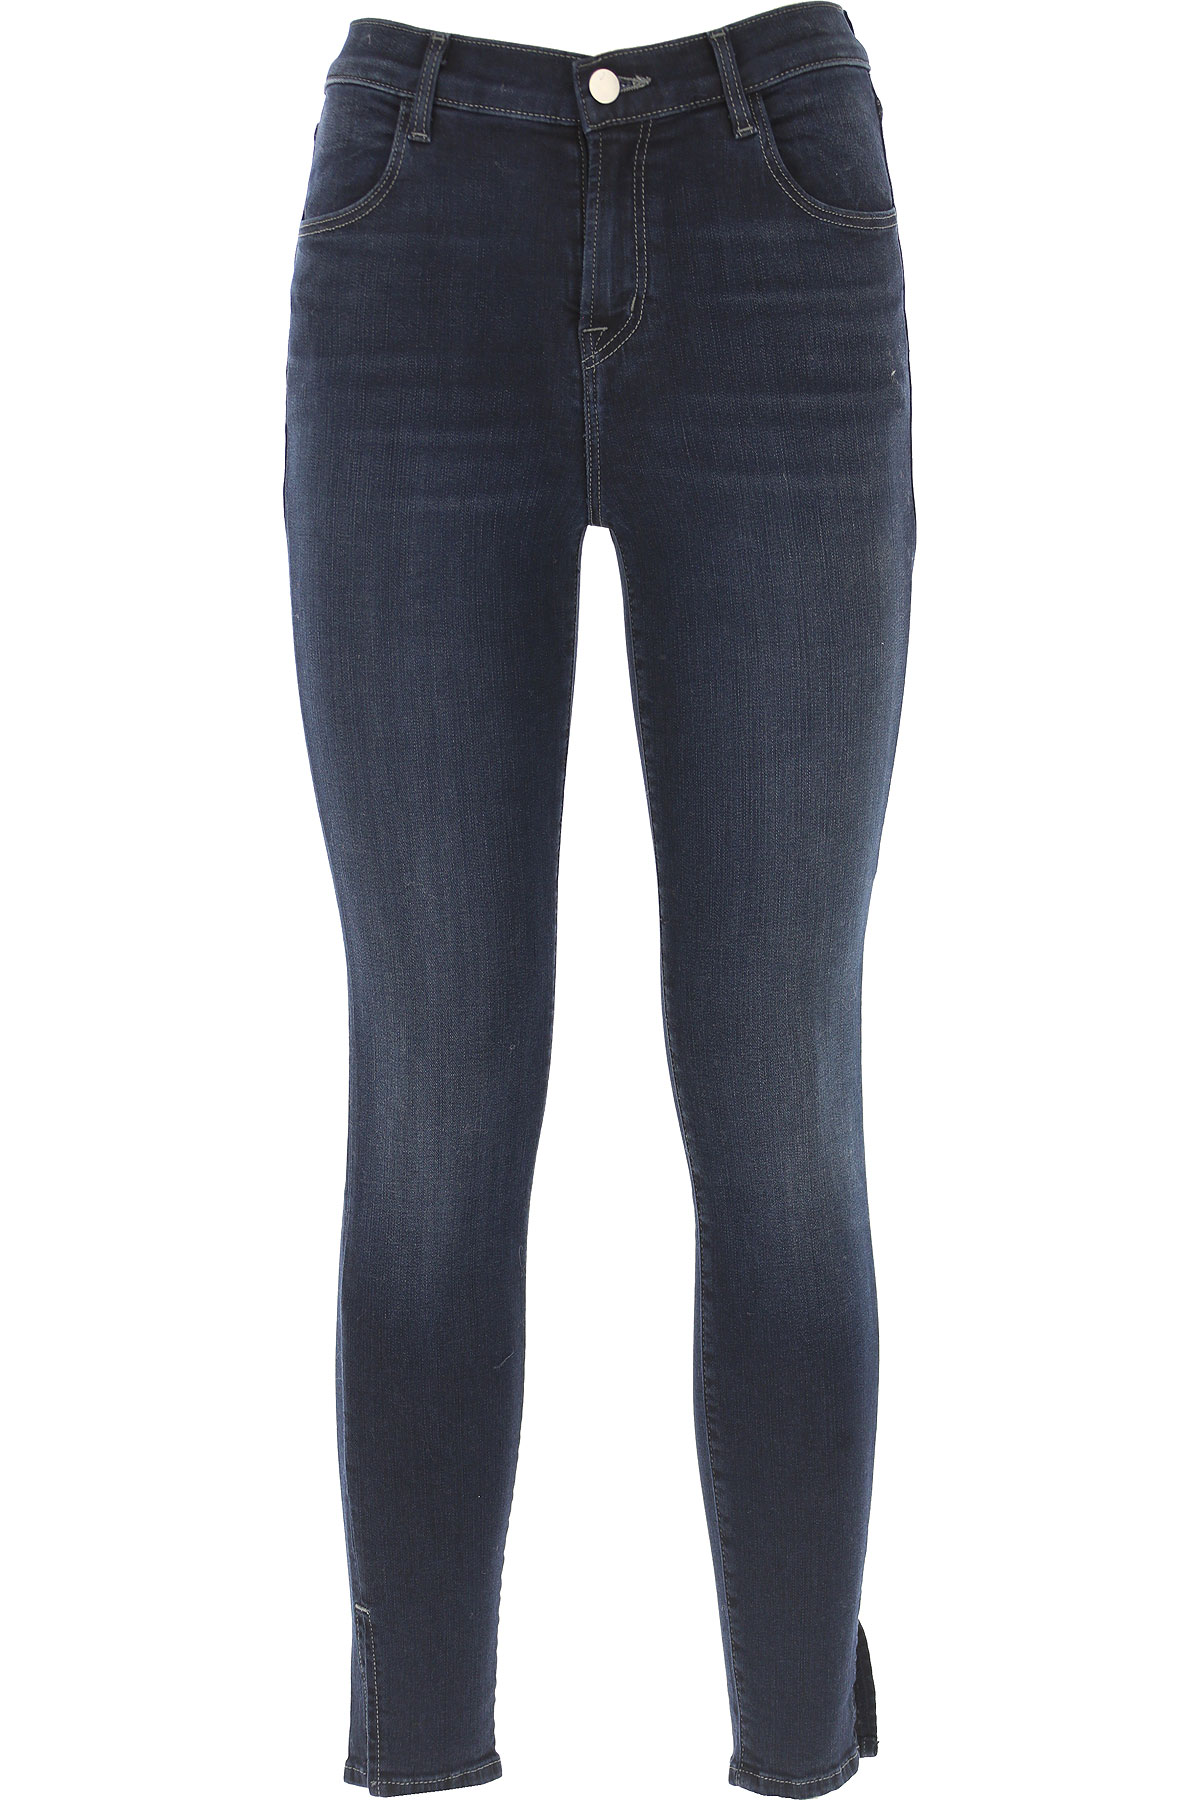 Image of J Brand Jeans, Blue, Cotton, 2017, 24 25 26 27 28 29 30 31 32